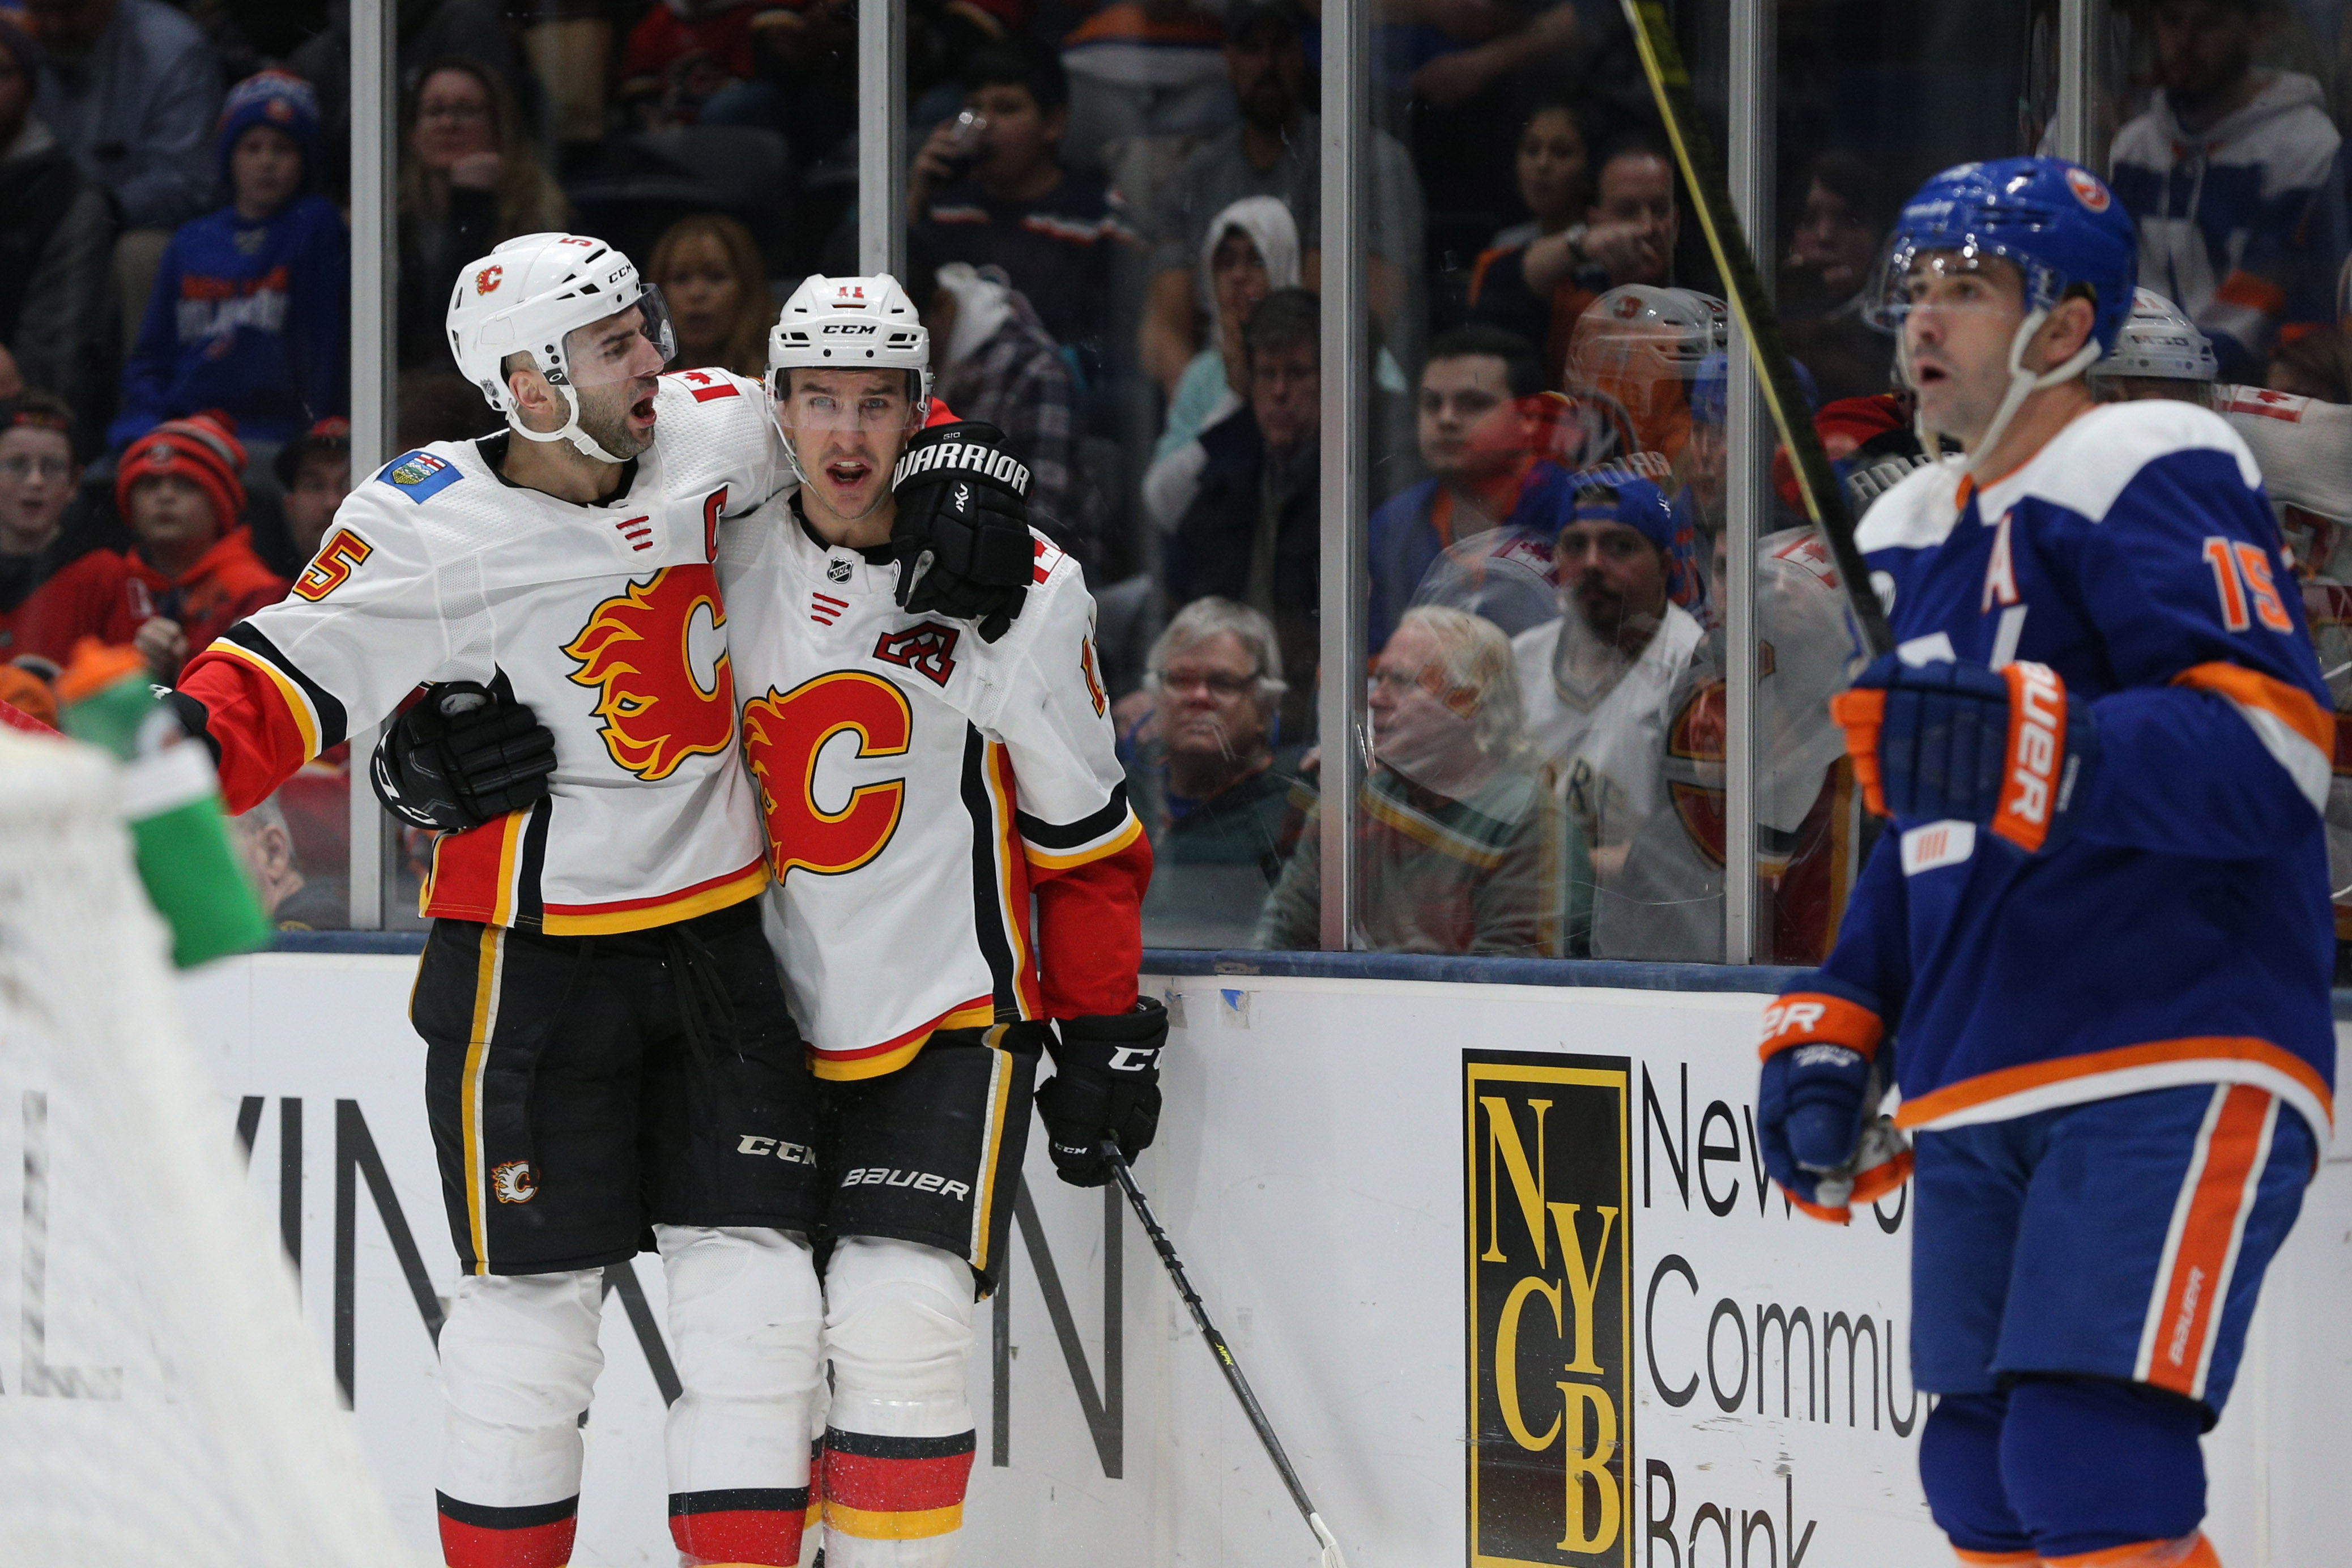 Feb 26, 2019; Uniondale, NY, USA; Calgary Flames center Mikael Backlund (11) celebrates with Calgary Flames defenseman Mark Giordano (5) in front of New York Islanders right wing Cal Clutterbuck (15) after scoring a goal during the third period at Nassau Veterans Memorial Coliseum. Mandatory Credit: Brad Penner-USA TODAY Sports